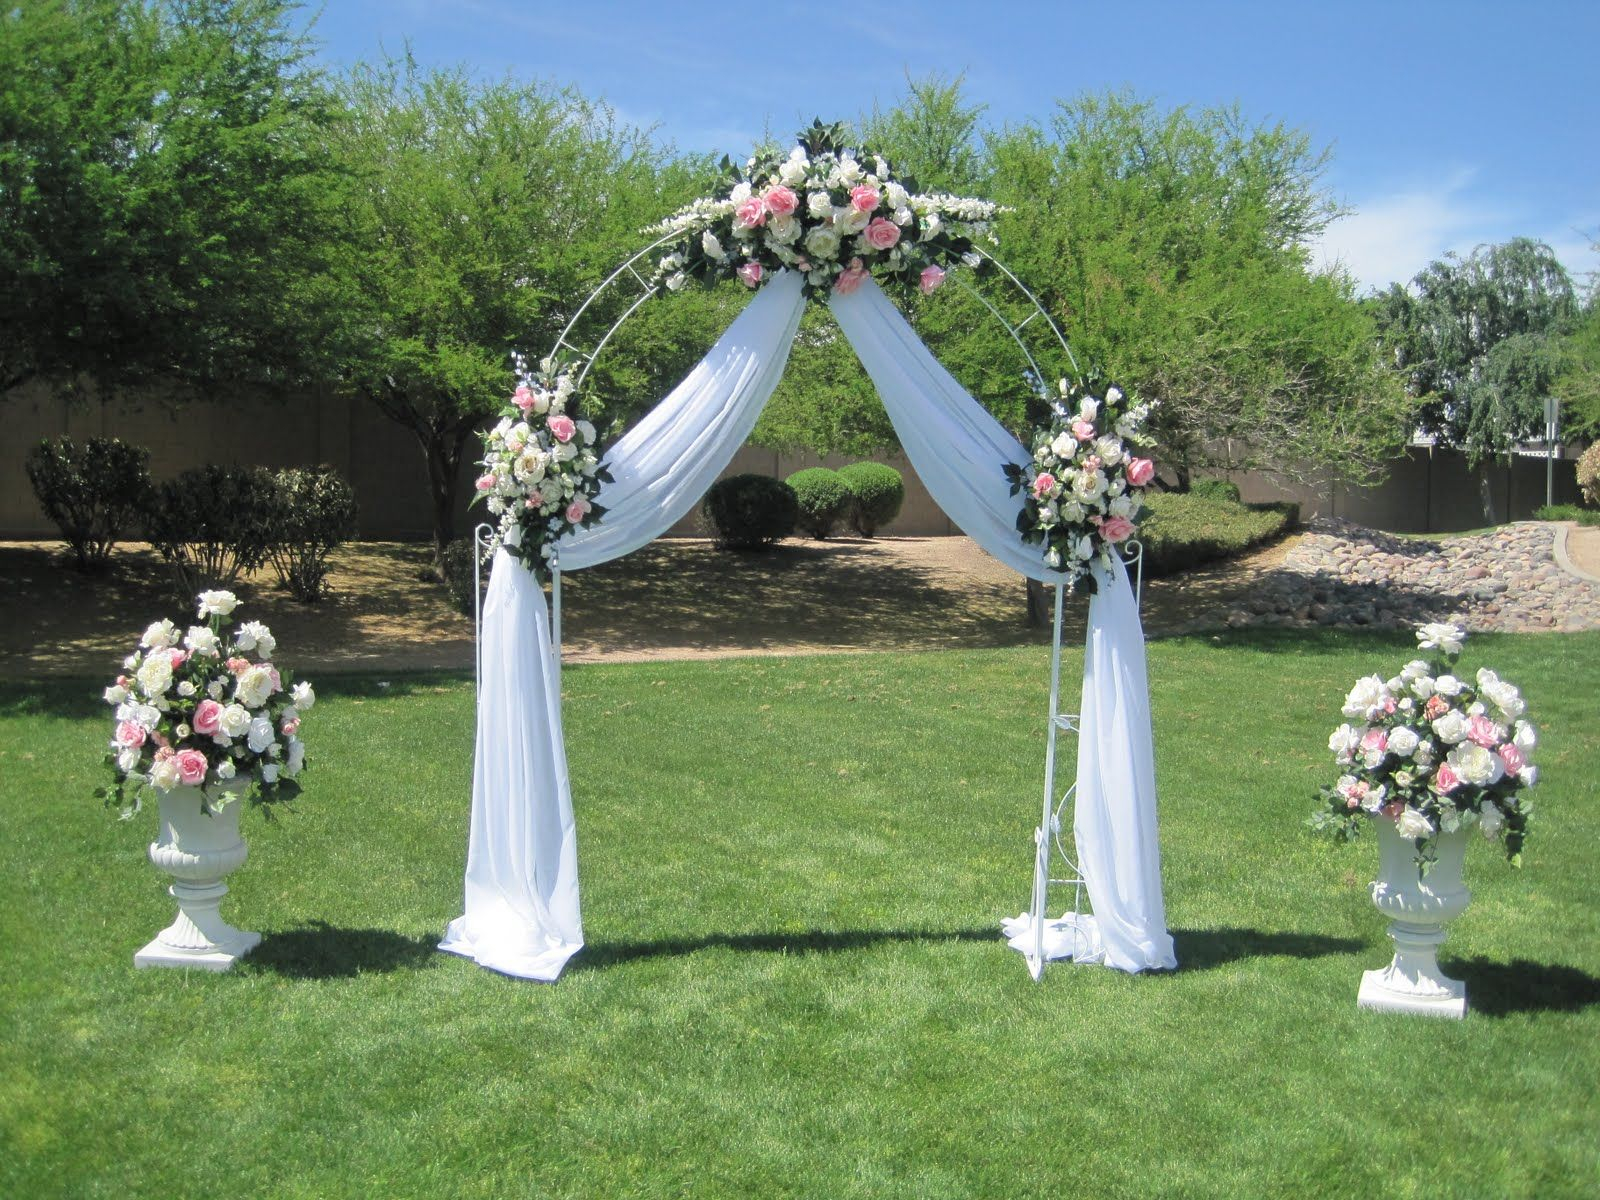 Wedding gazebo decorating ideas white wrought iron arch for Decoration 4 wedding